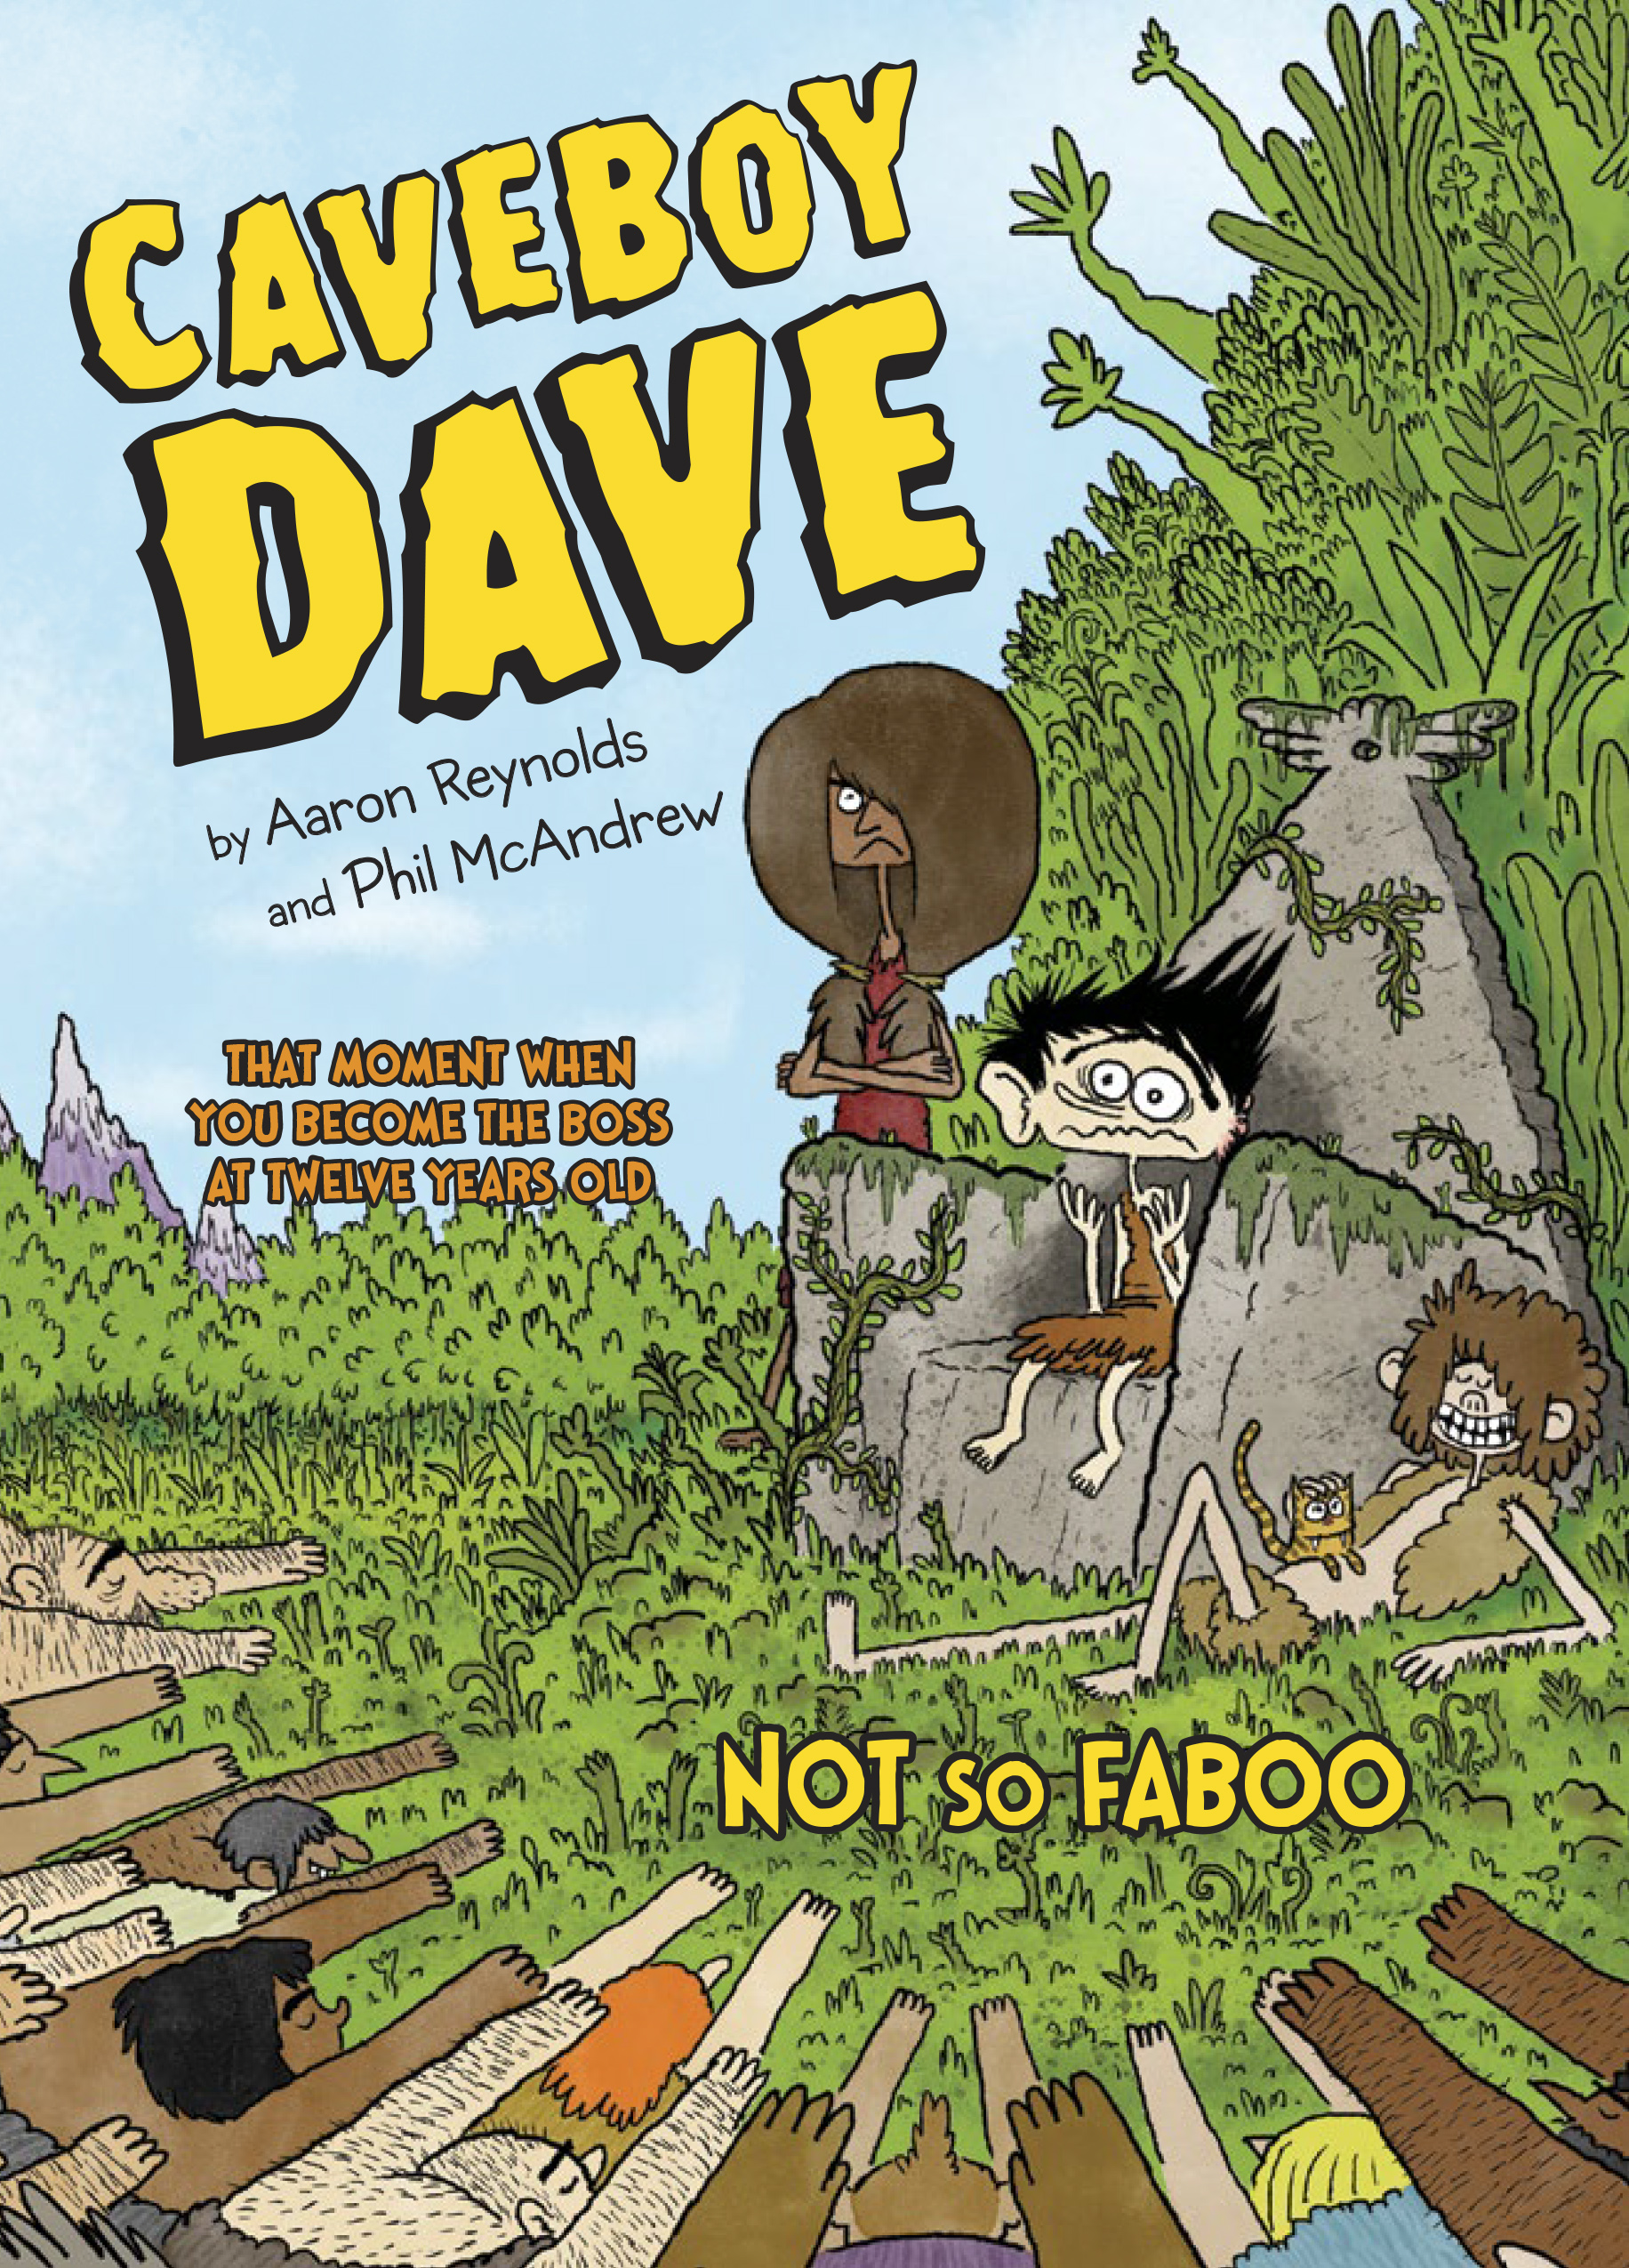 CAVEBOY DAVE: NOT SO FABOO by Aaron Reynolds, illustrated by Phil McAndrew (Viking Children's, October 2018)